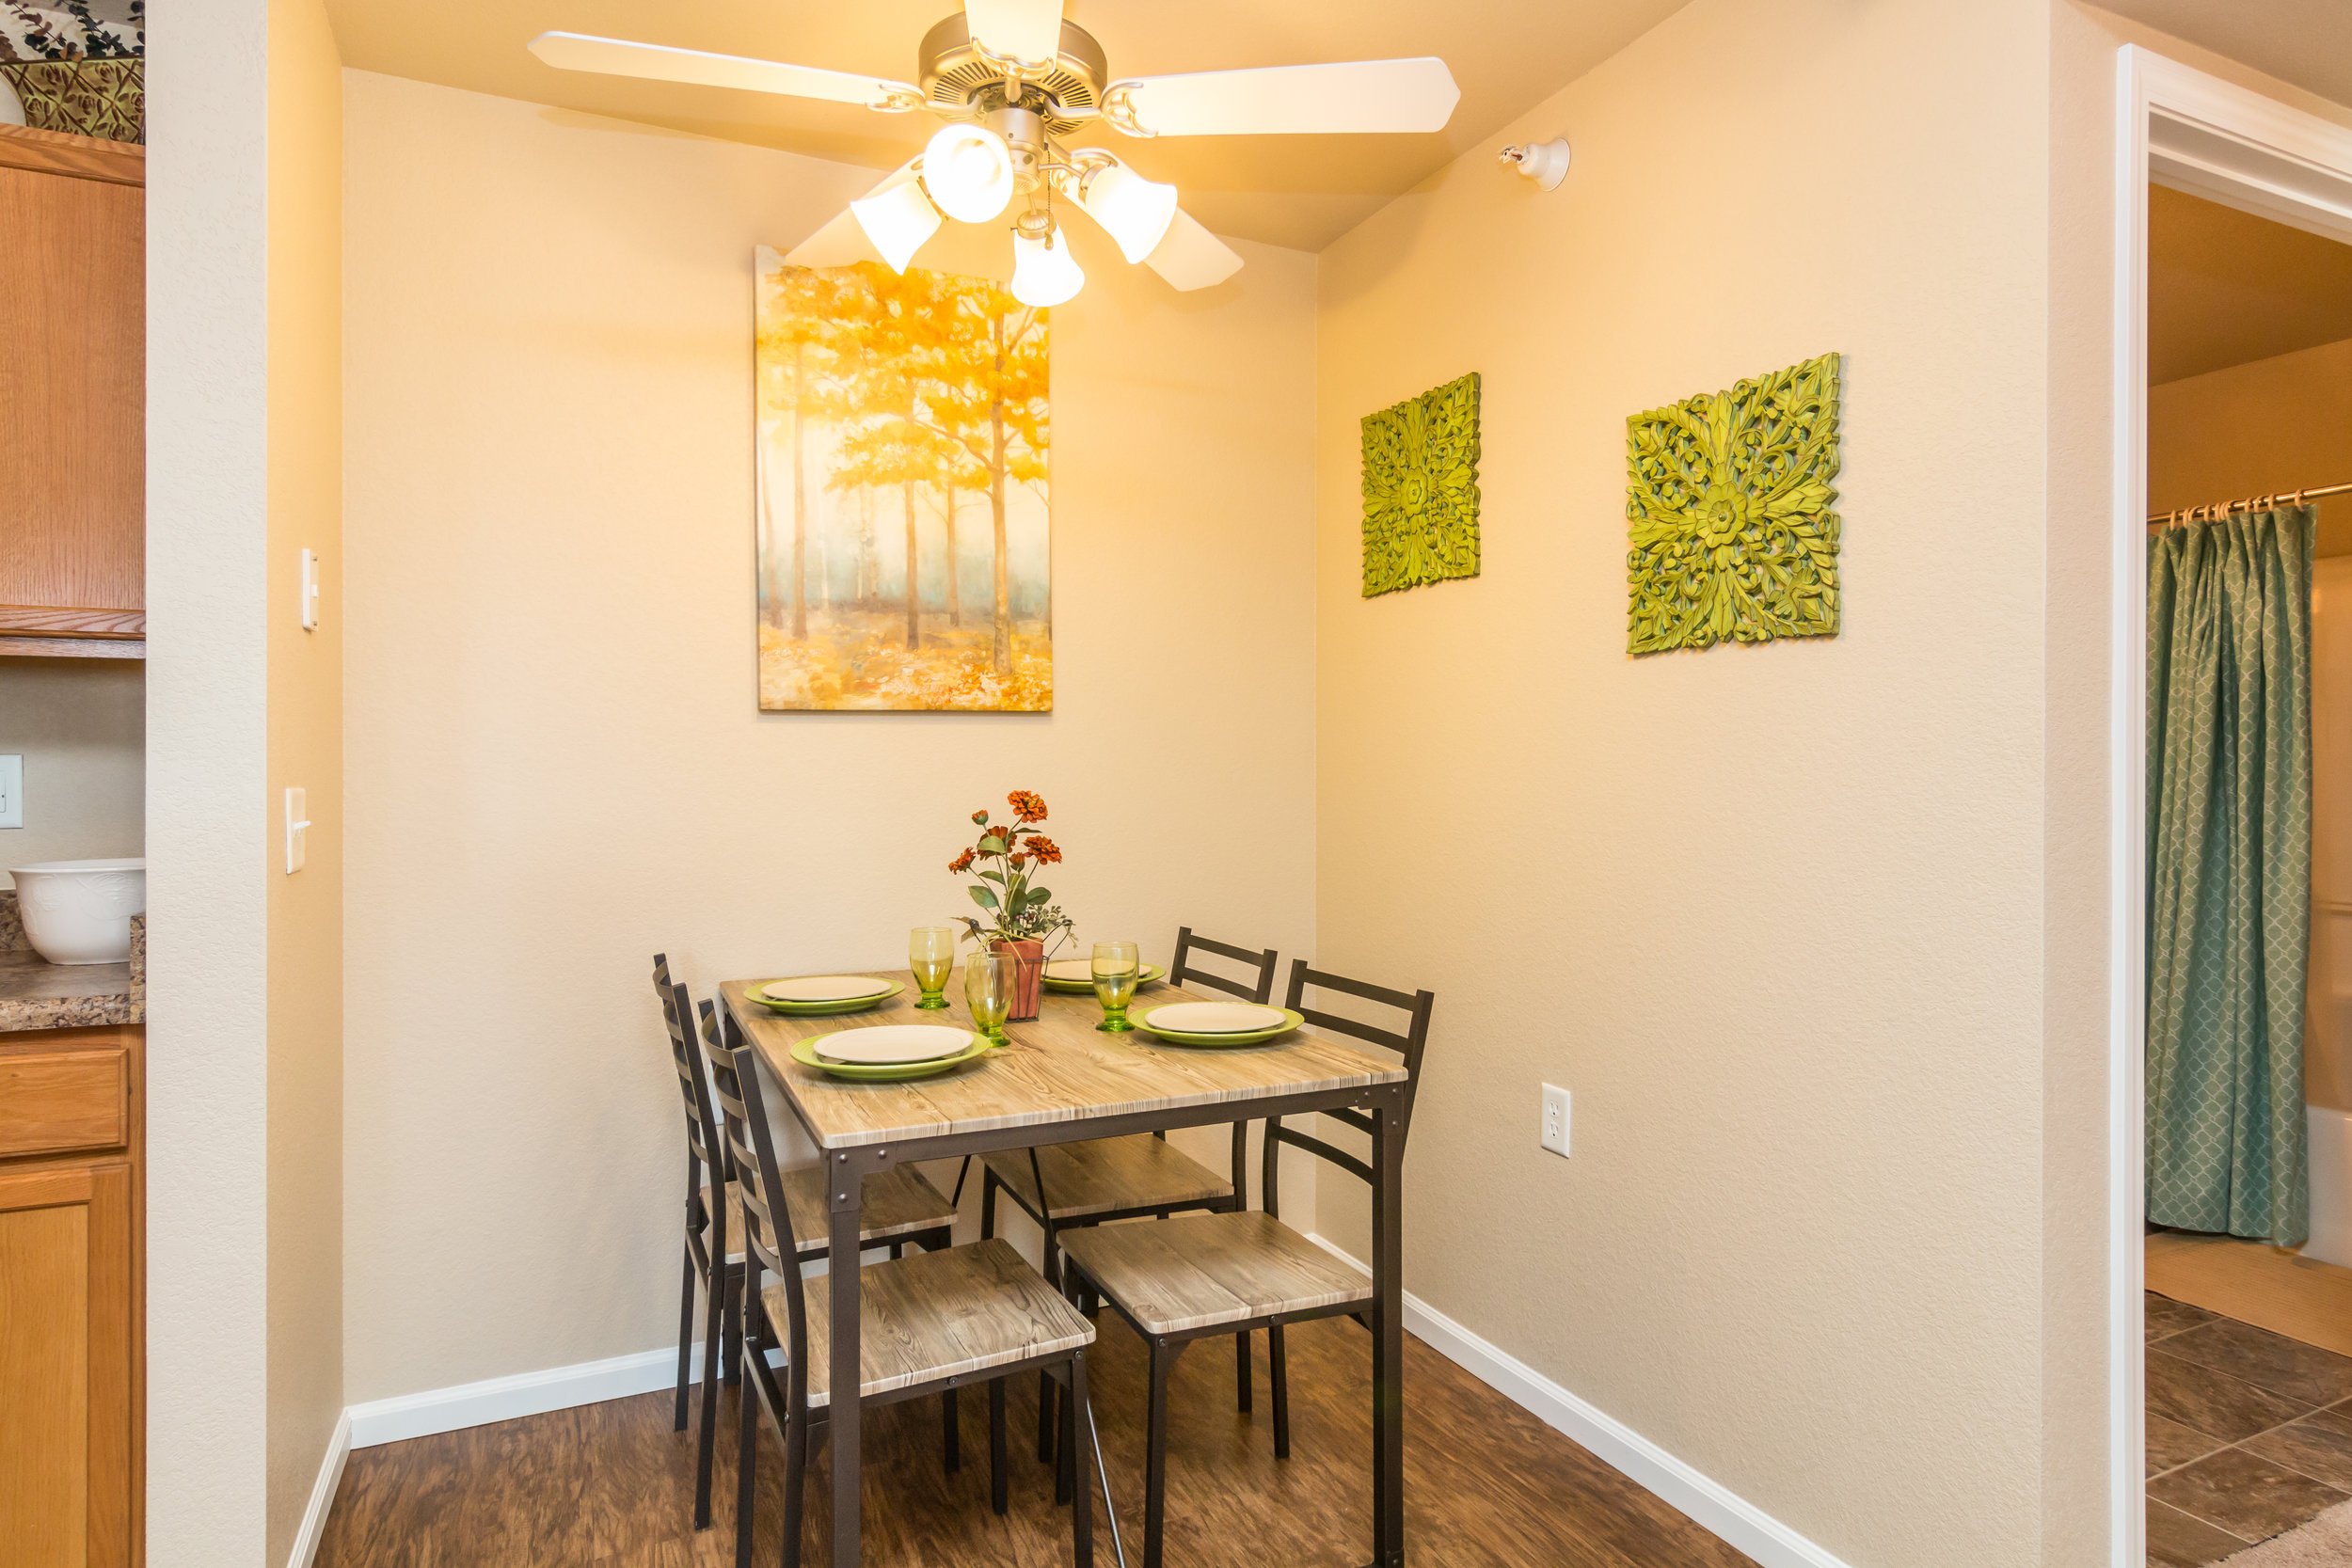 04-Great Dining Space.jpg